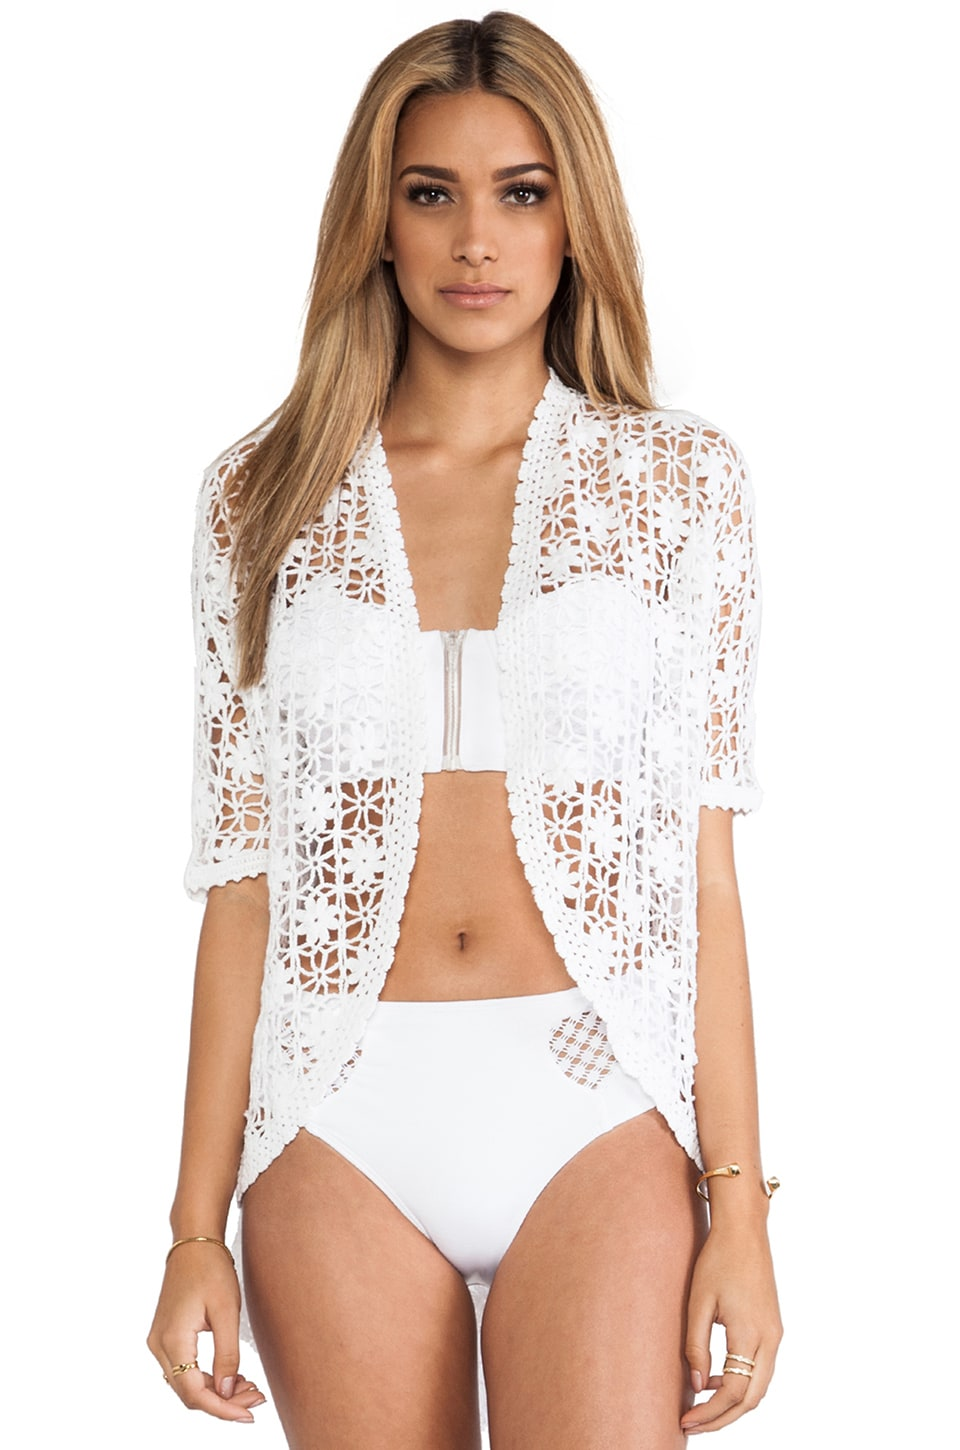 Lisa Maree The Flickering Flame Kimono in Creme Fraiche